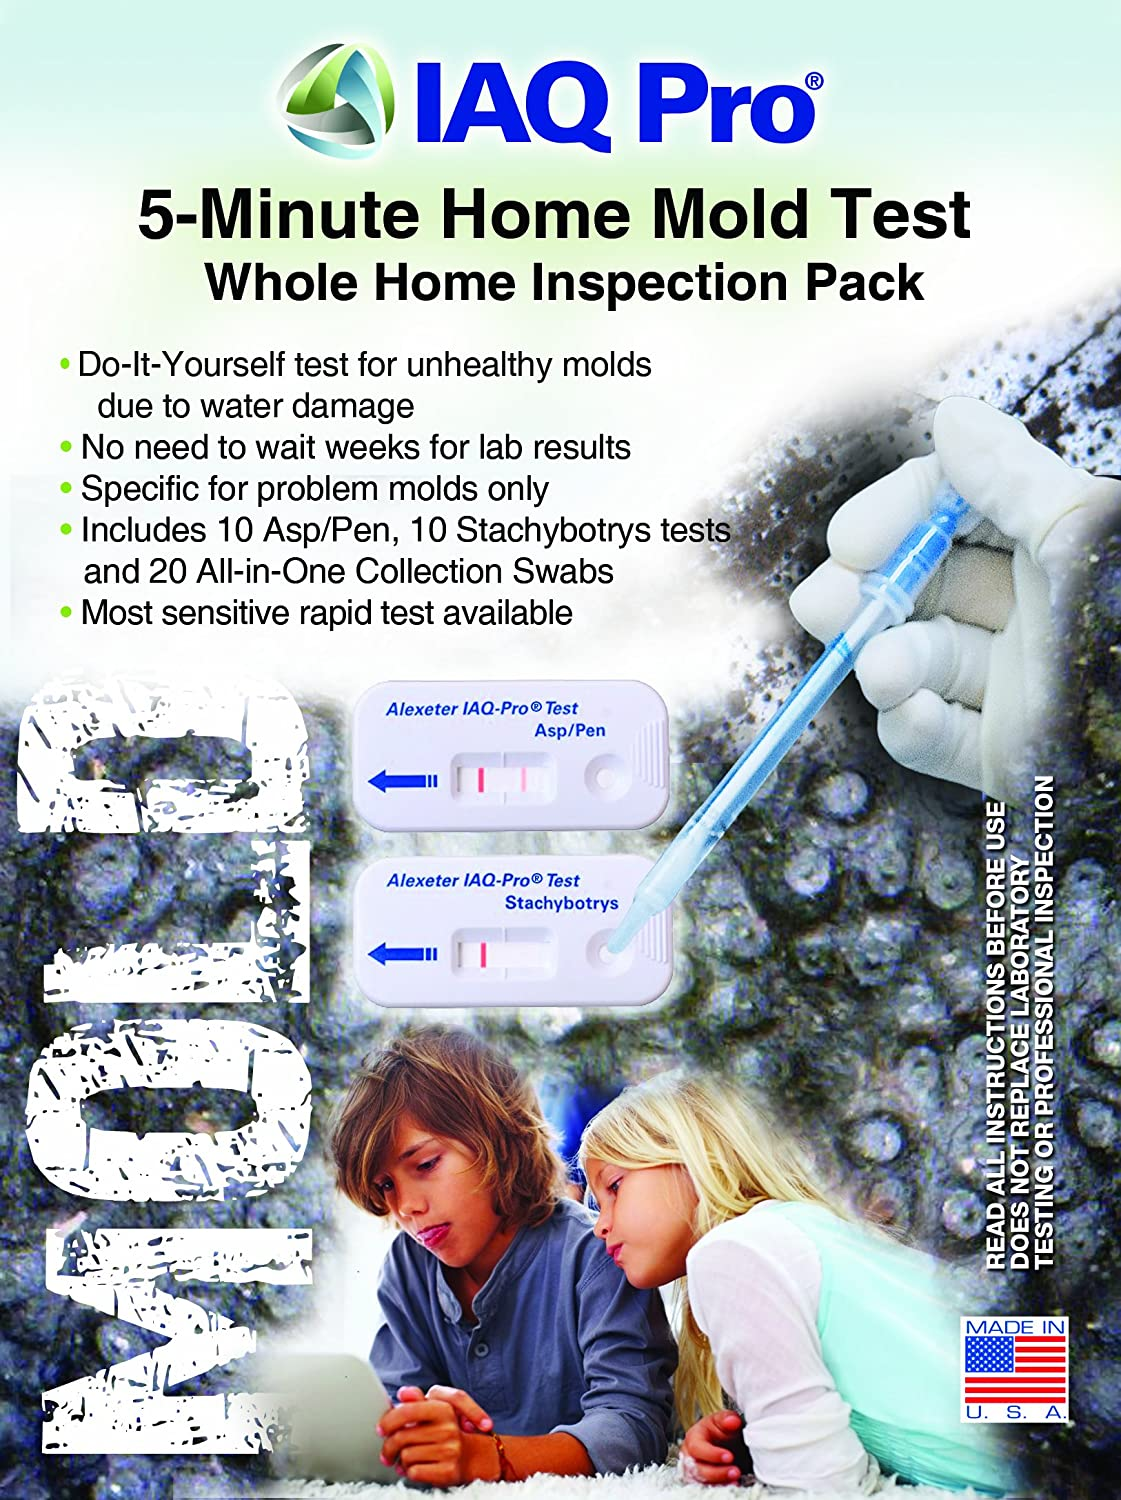 IAQ Pro 5-Minute Mold Test - Professional Inspection Pack (10 Test Sets)